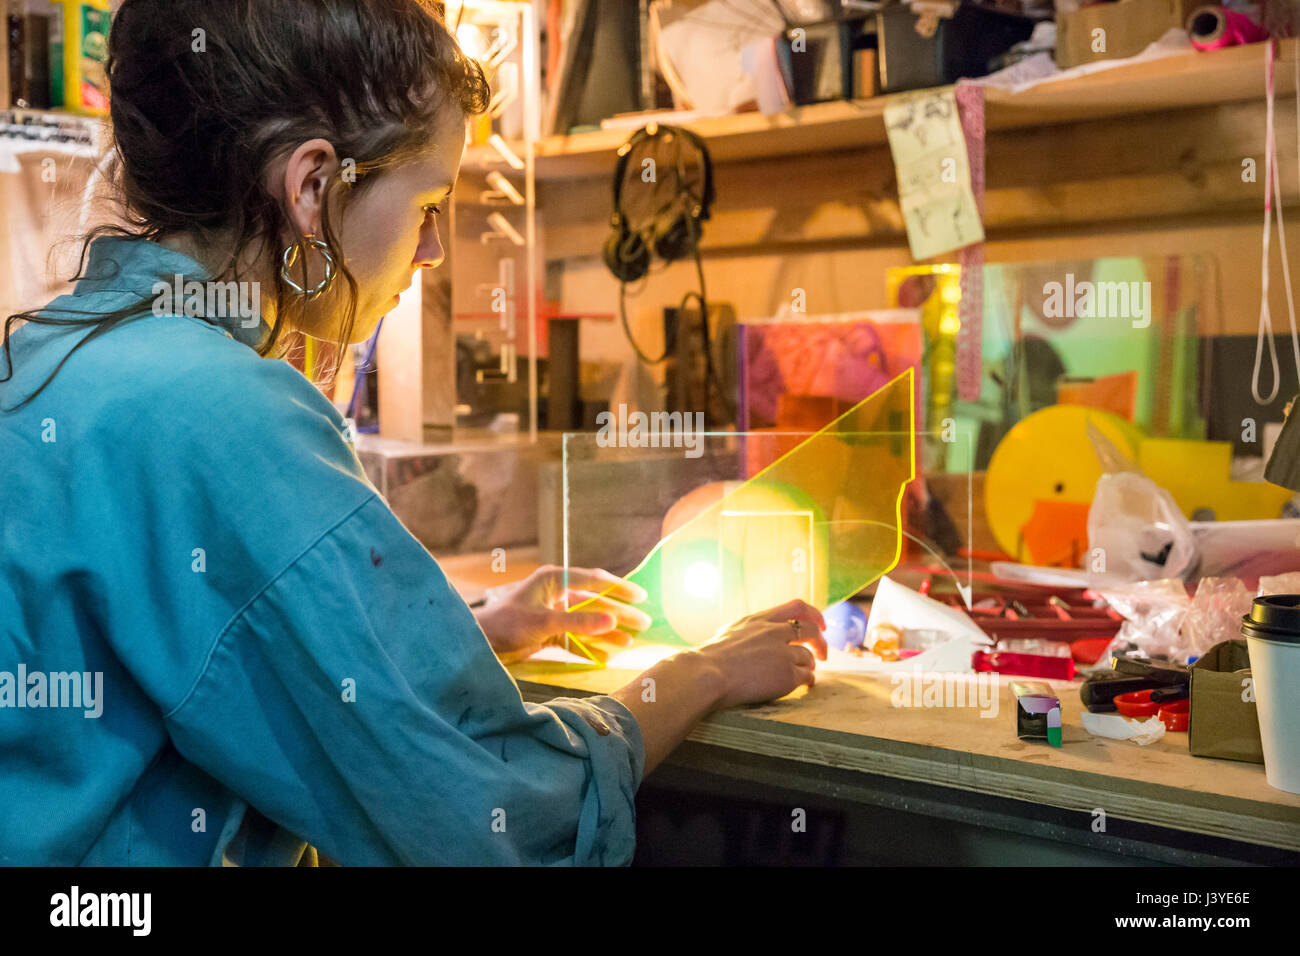 Young woman looking at materials in a craft workshop - Stock Image